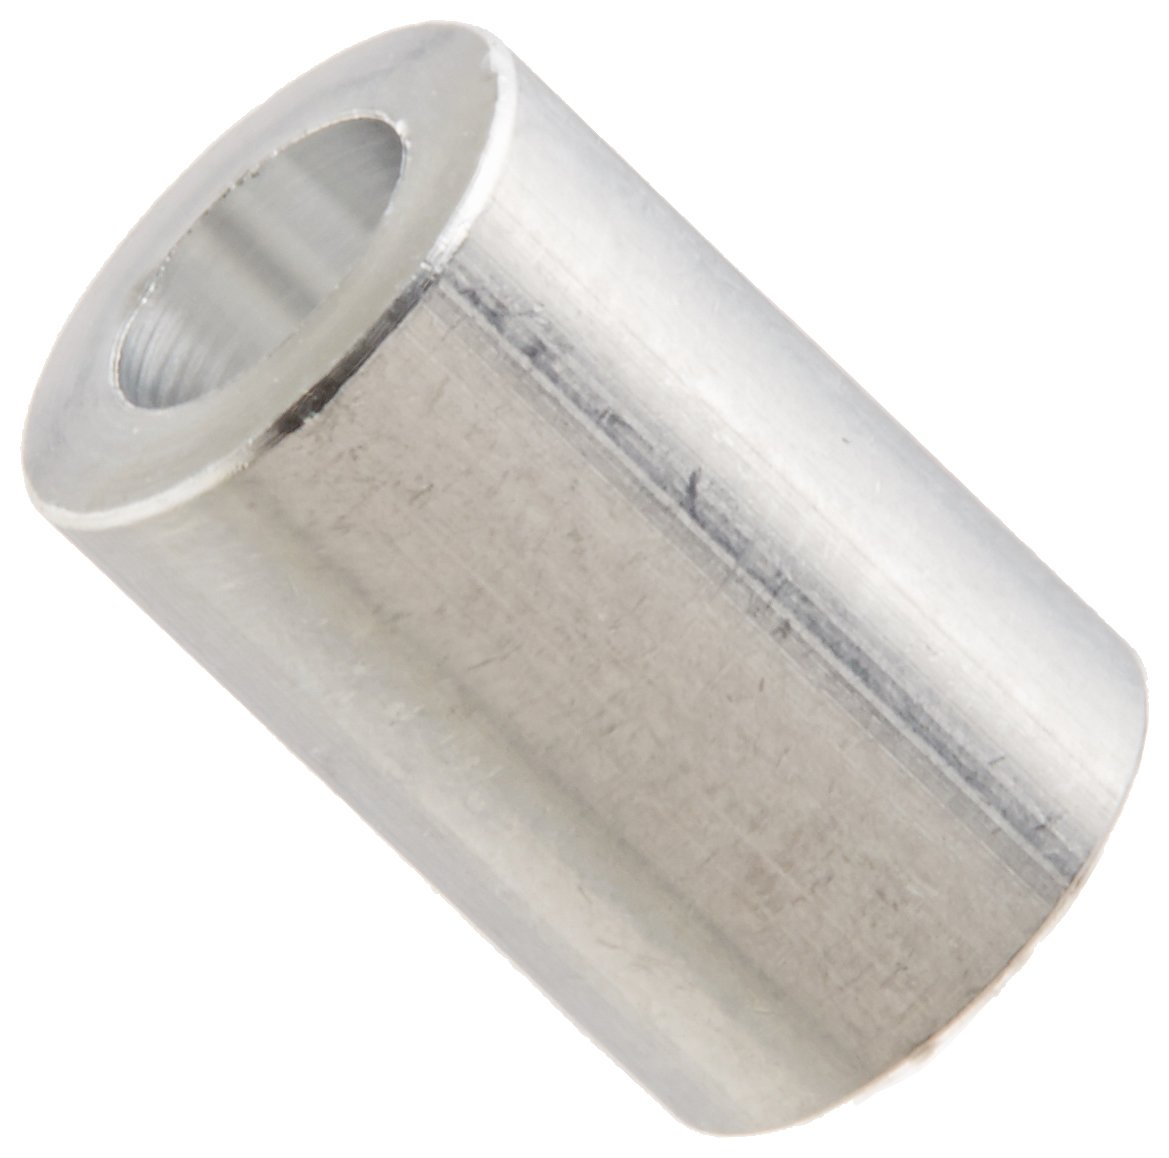 1//4 Length #6 Screw Size Pack of 10 Aluminum 0.14 ID Plain Finish Round Spacer 5//16 OD